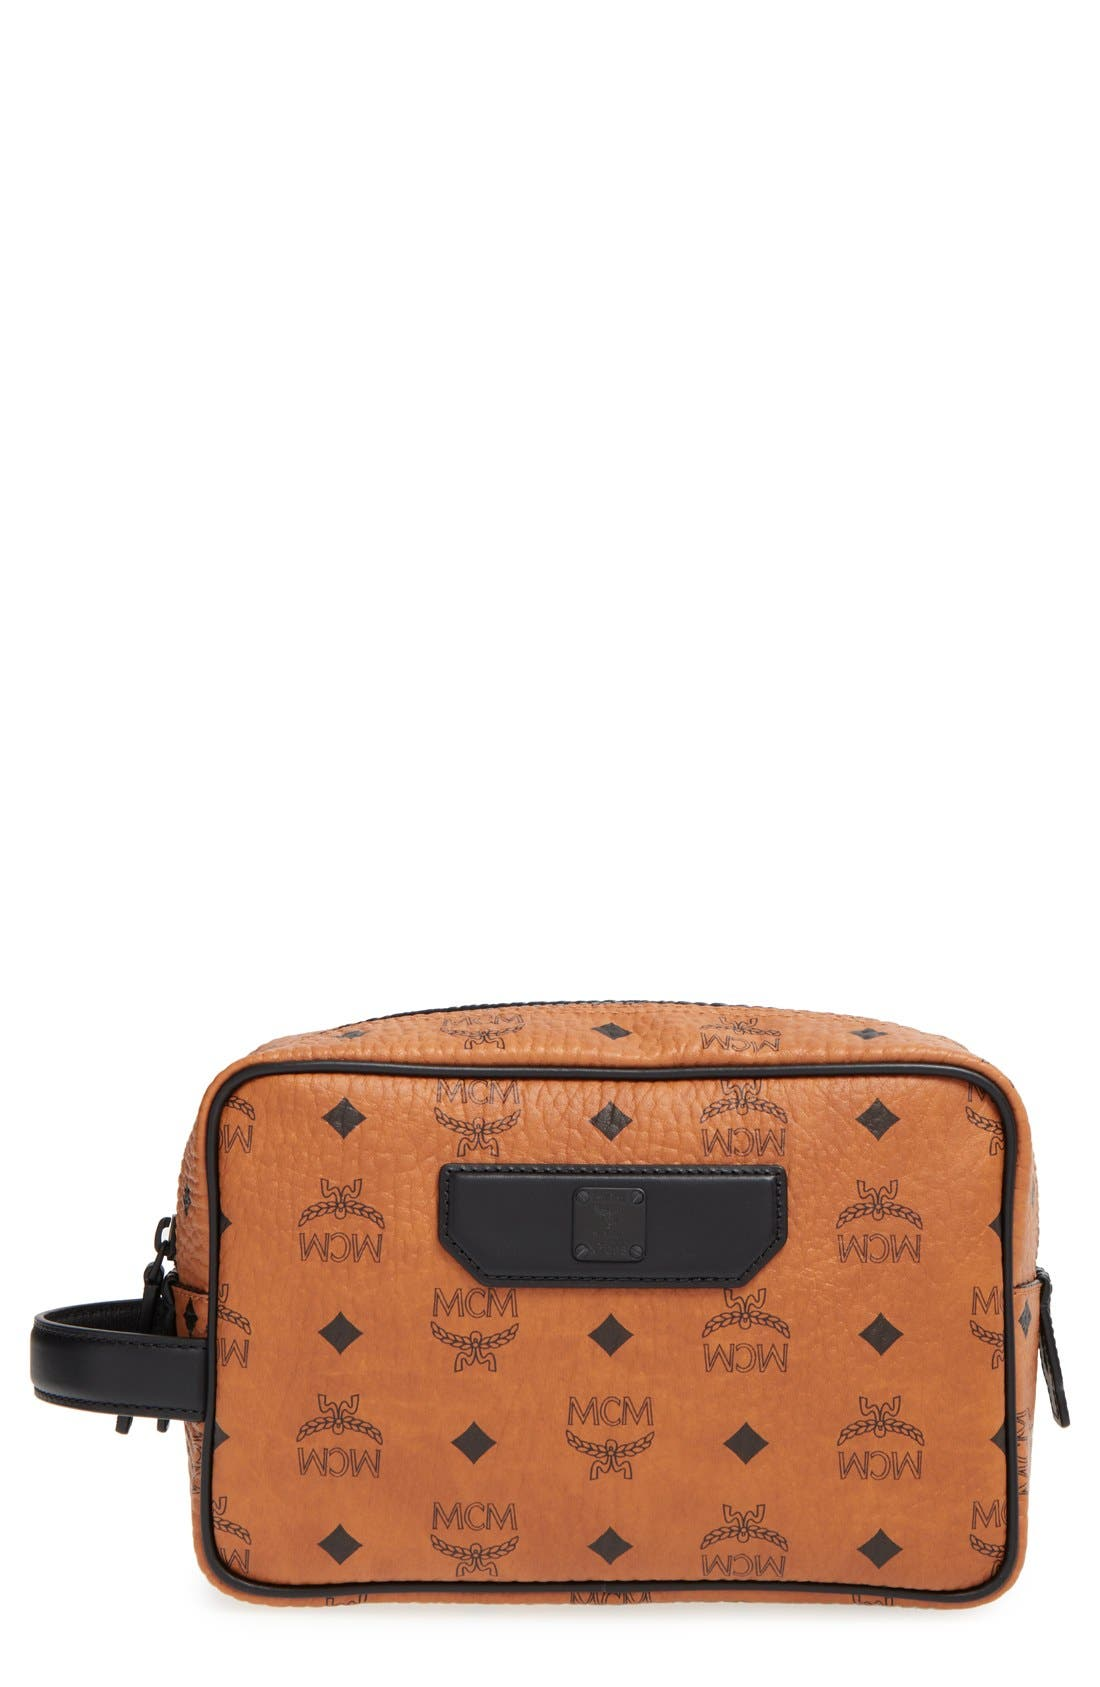 Alternate Image 1 Selected - MCM 'Nomad - Visetos' Coated Canvas Cosmetics Case